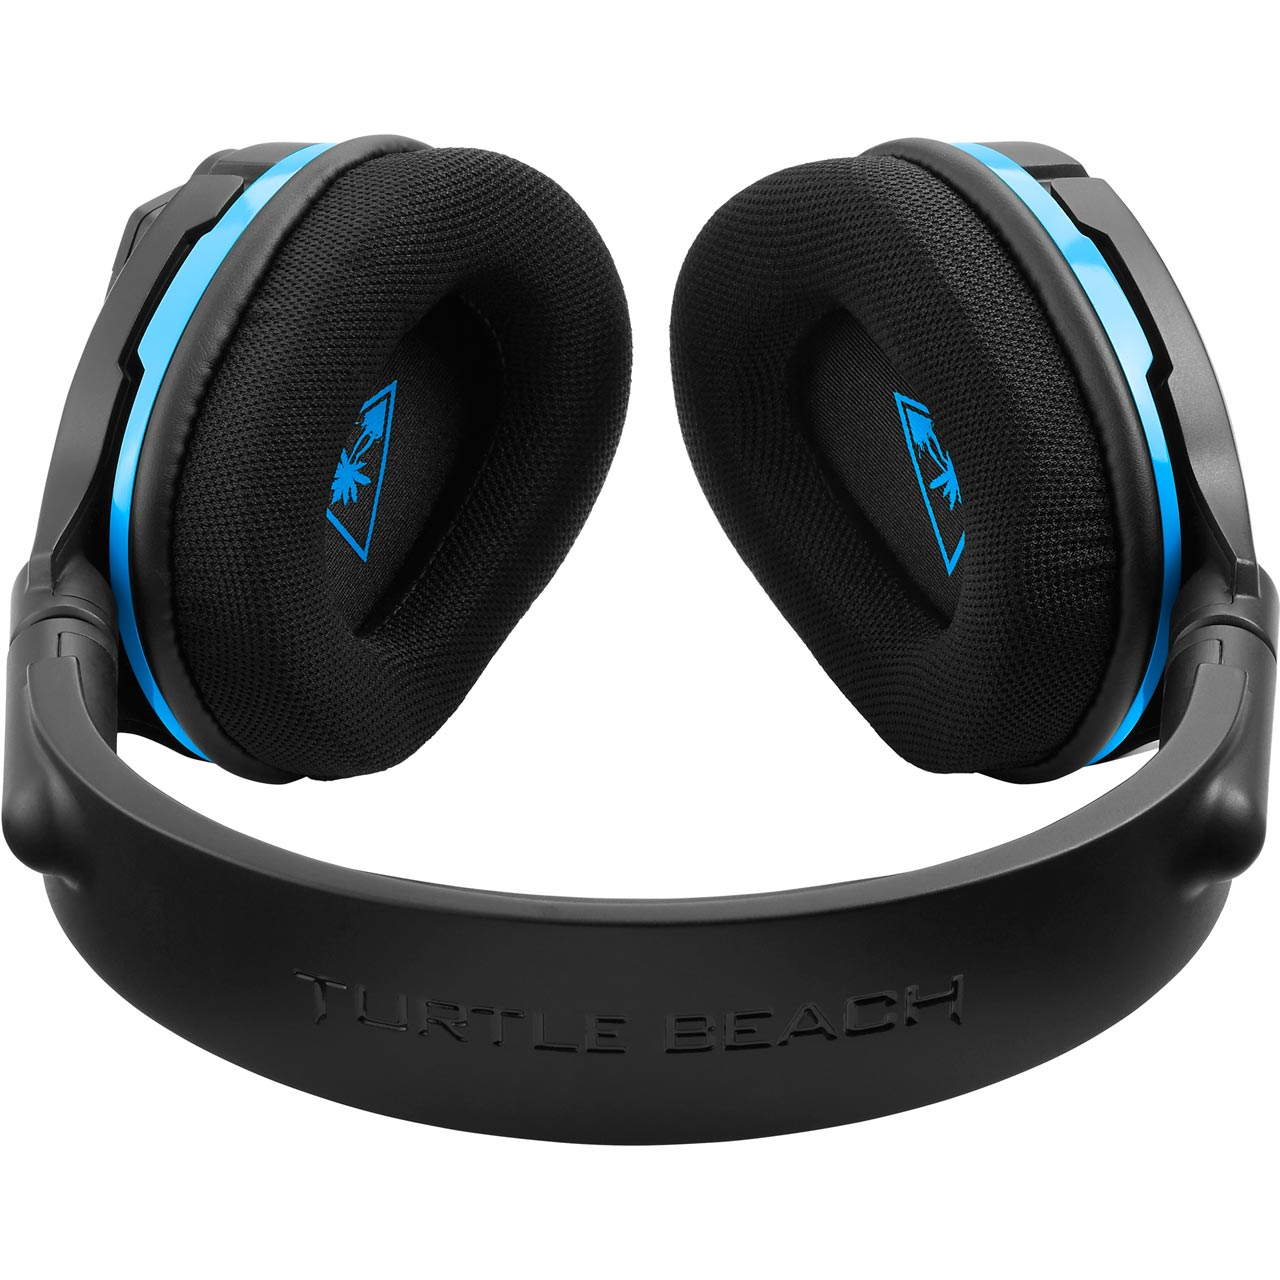 Turtle Beach Stealth 600P Gaming Headset - Black